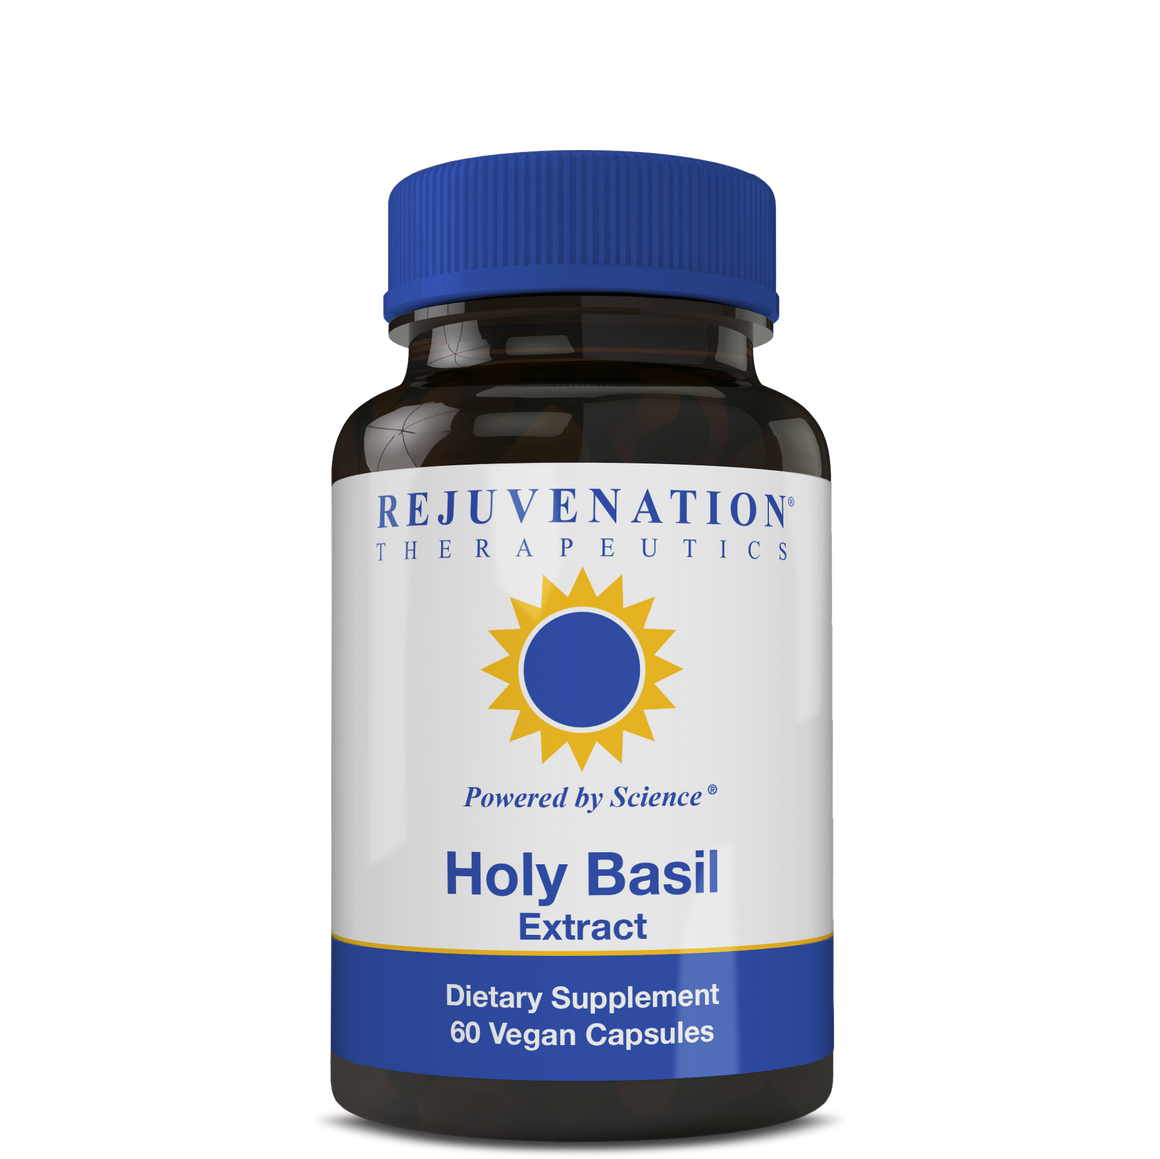 Holy Basil Extract (500 mg, 60 Vegan Capsules) - Stress Response & Healthy Mood, Non-GMO, Gluten-Free